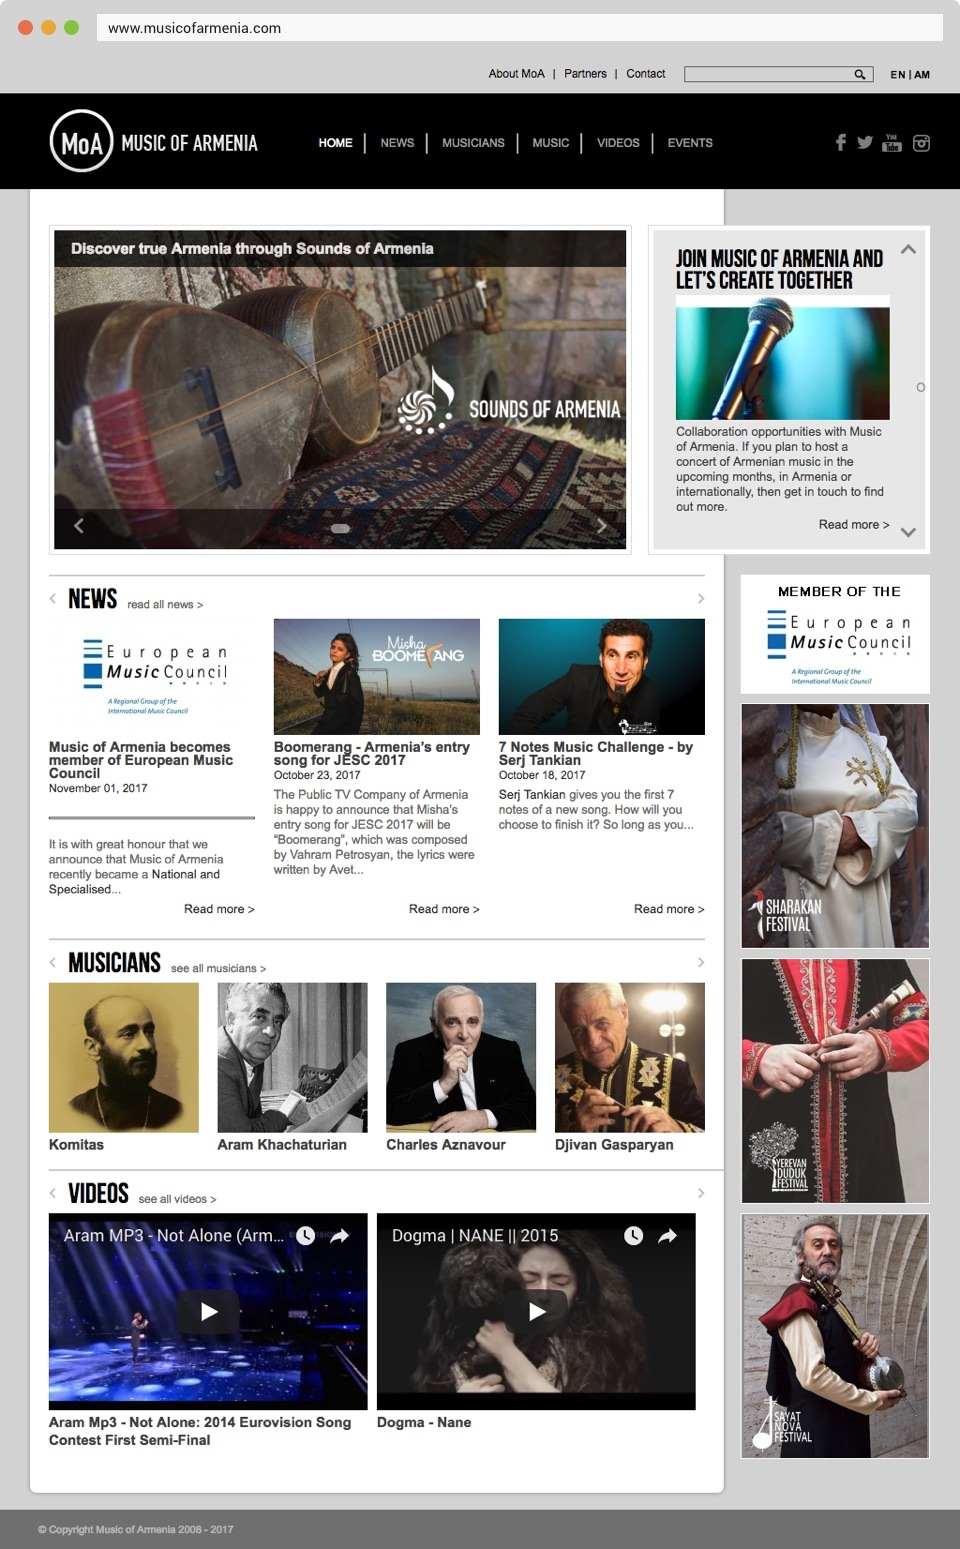 Music of Armenia Front Page Screenshot